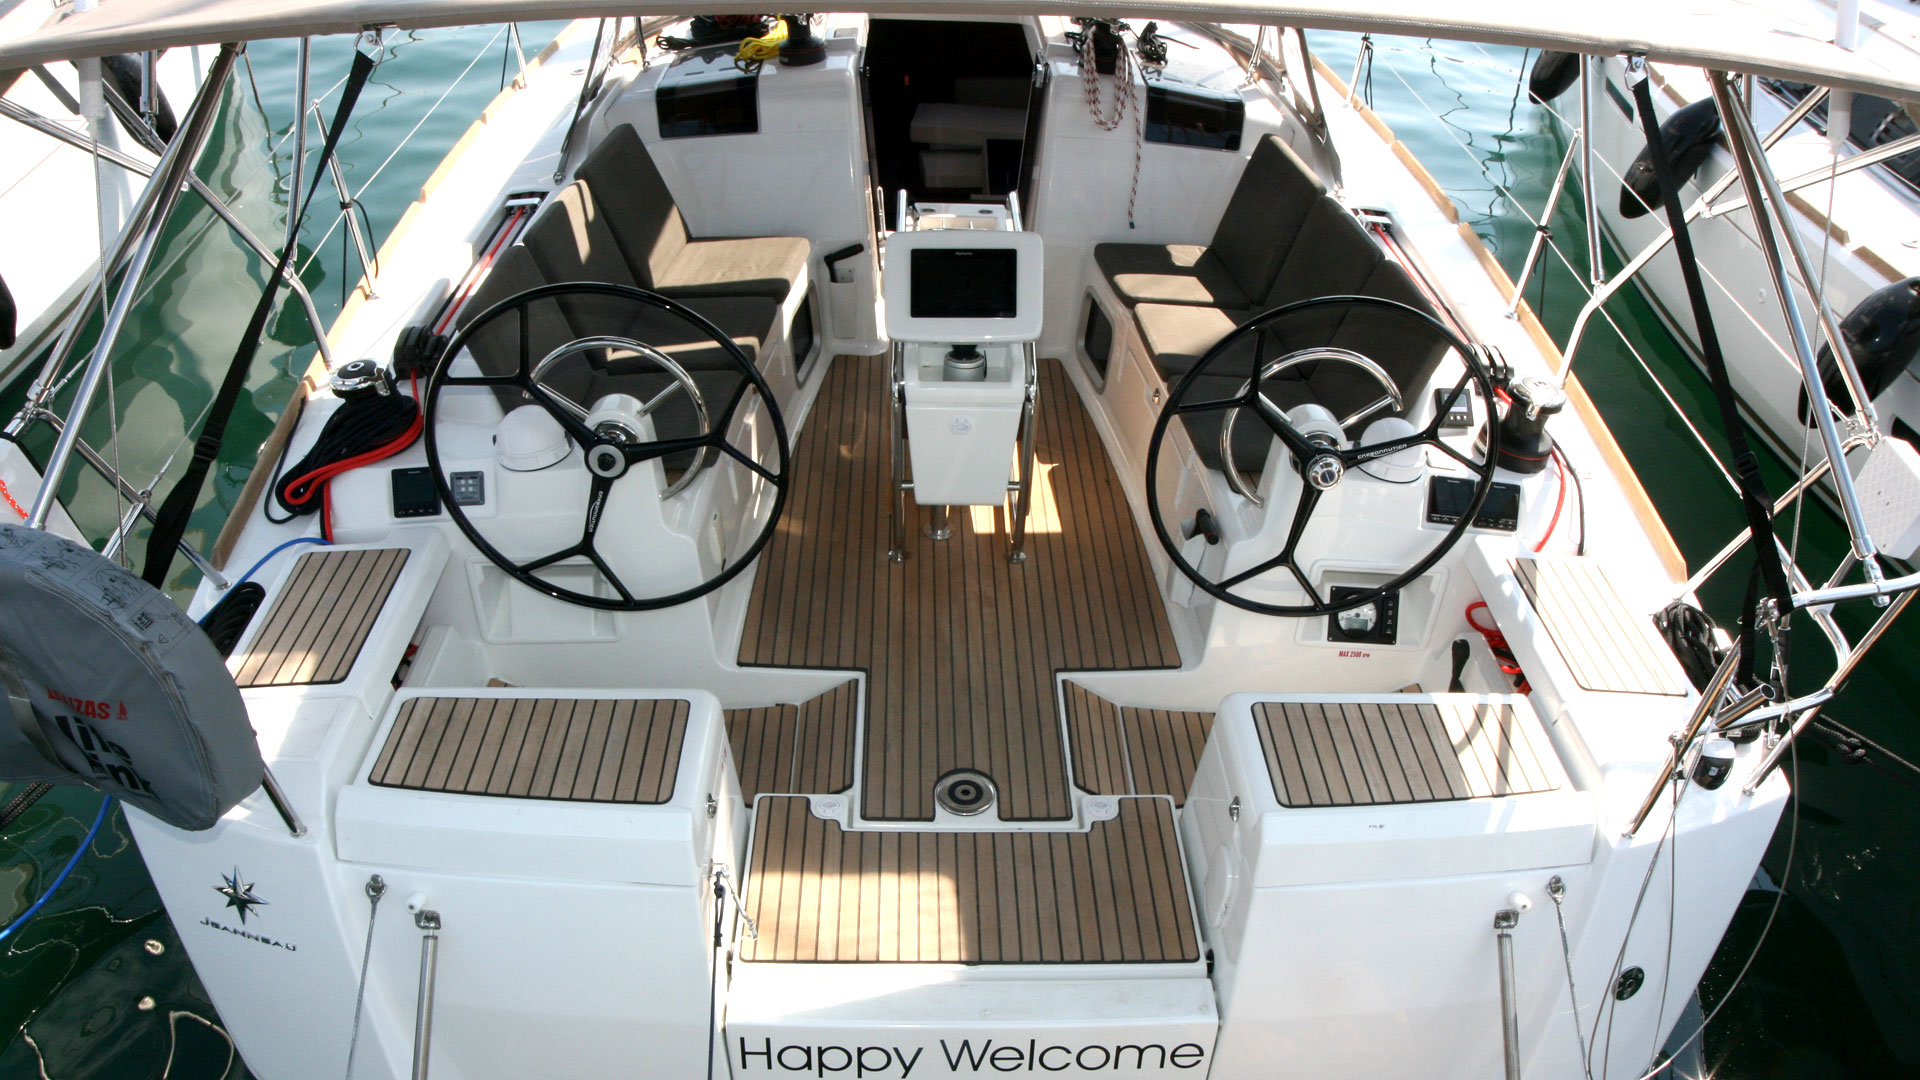 Sun Odyssey 419 - Happy Welcome